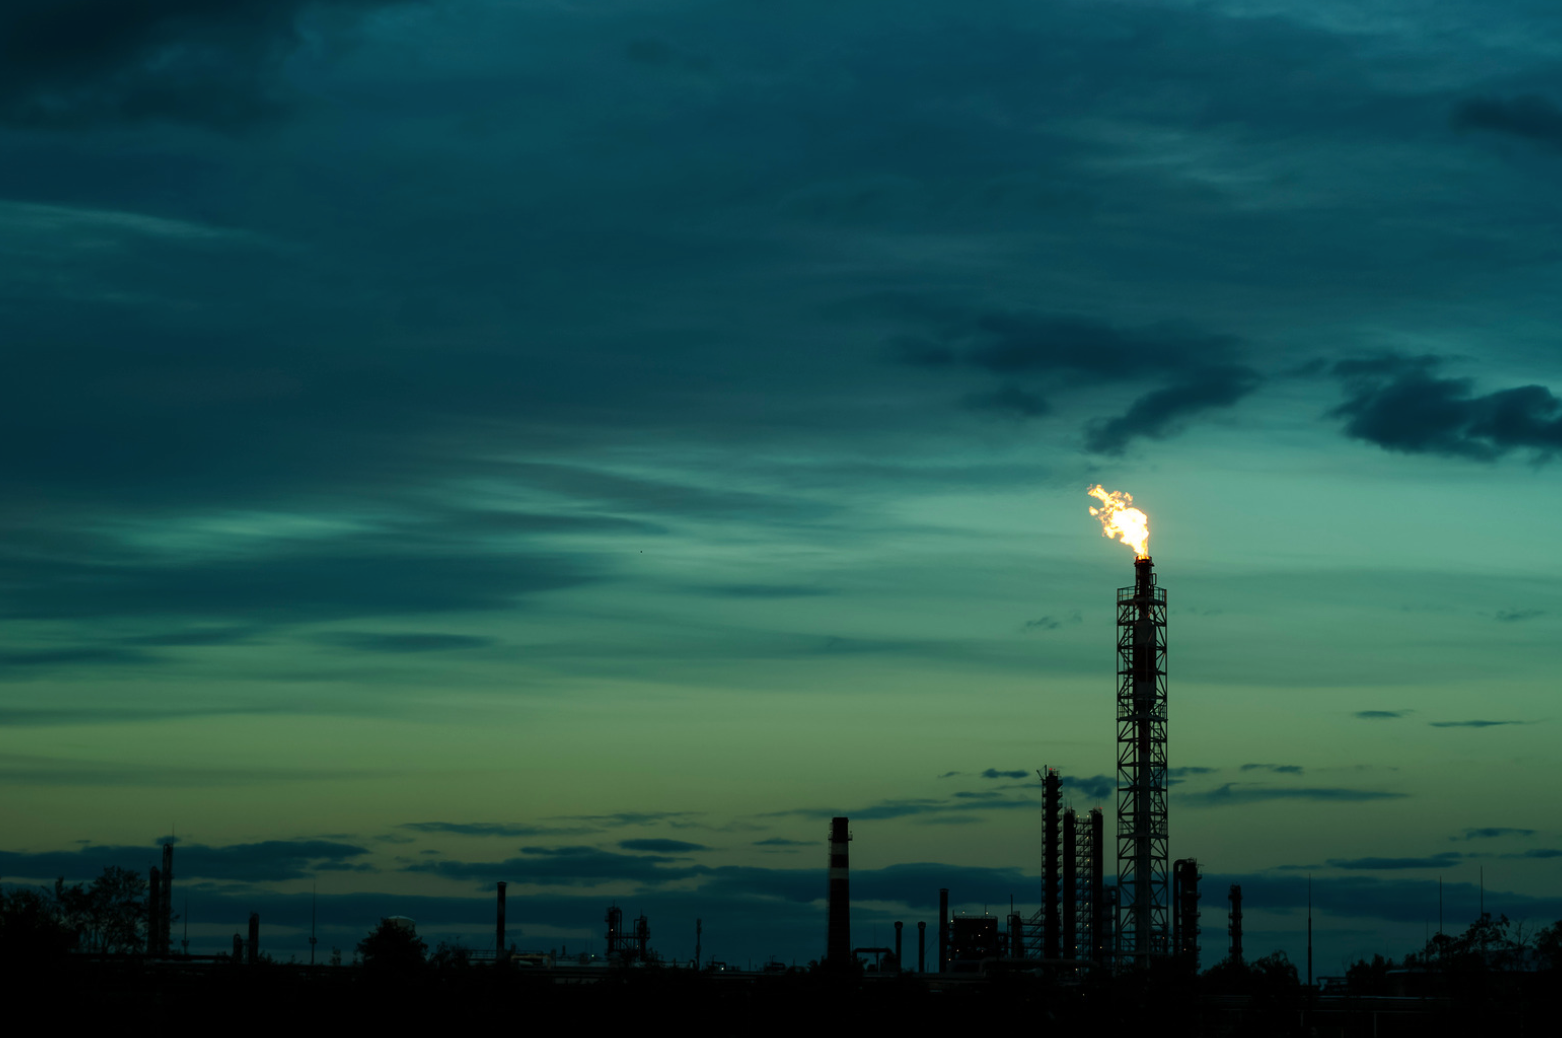 Guest Voz: Boricua implores all to join her in opposing a perilous EPA rollback